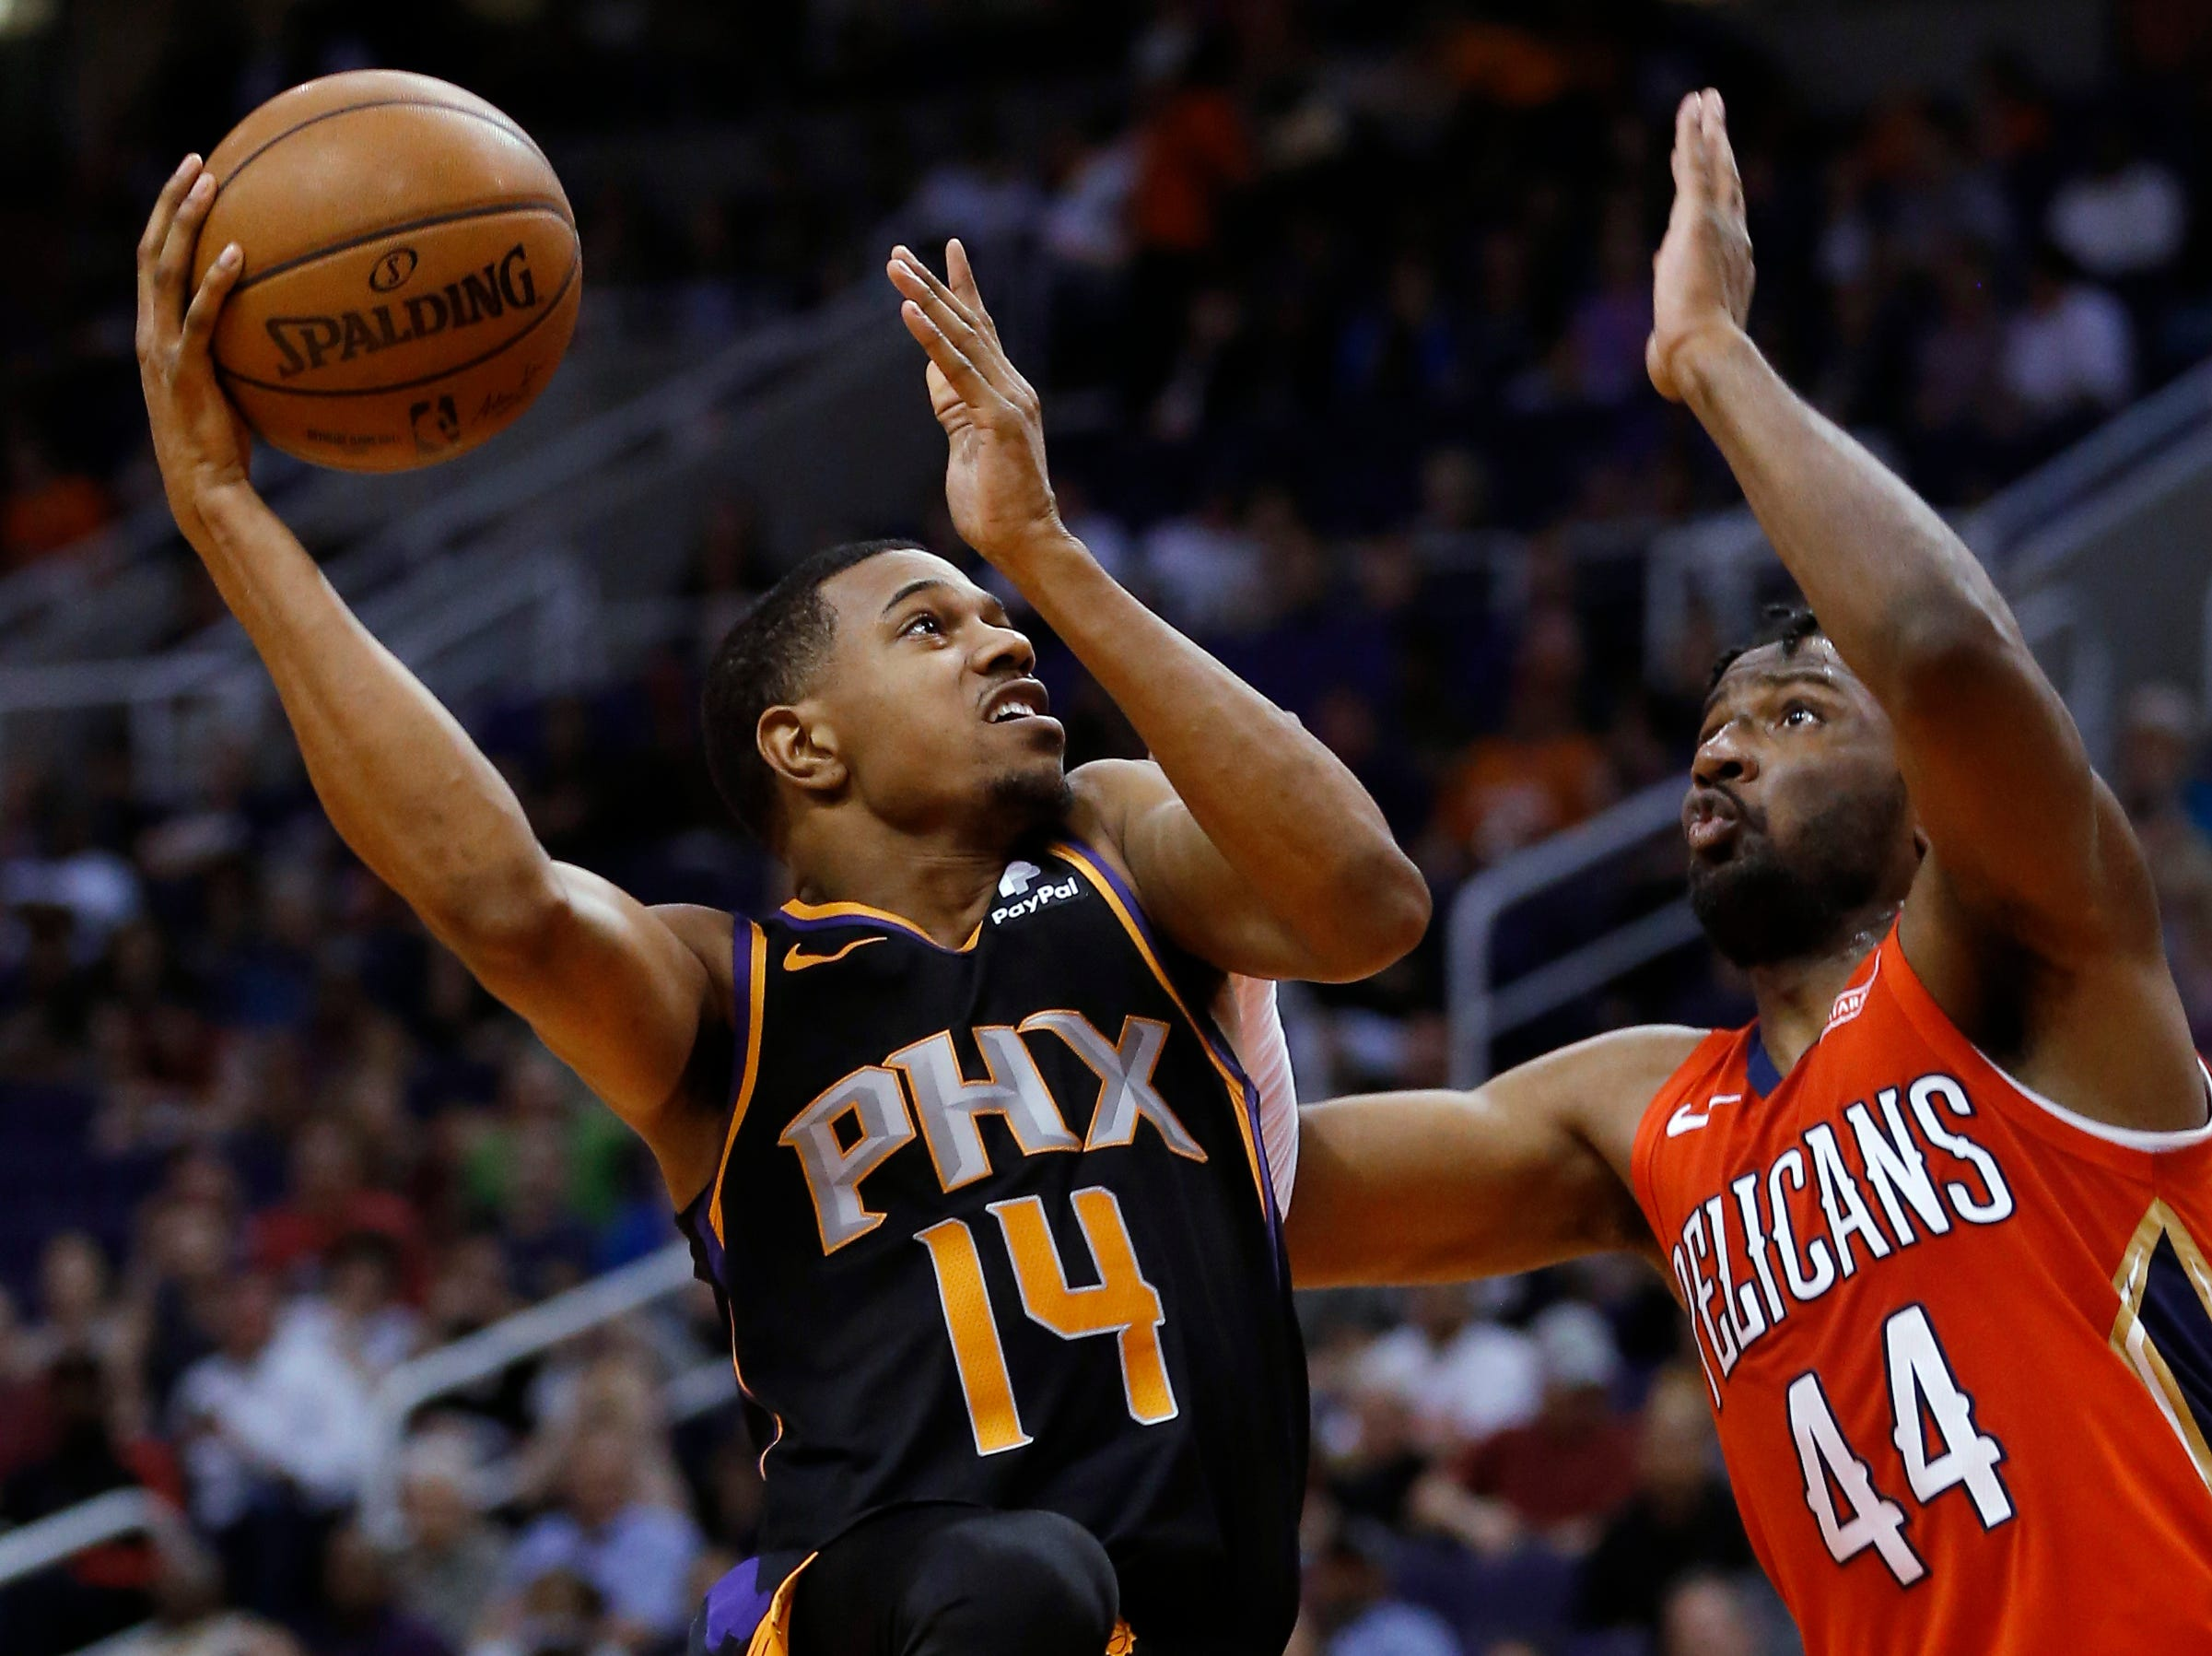 Phoenix Suns guard De'Anthony Melton (14) shoots over New Orleans Pelicans forward Solomon Hill during the second half of an NBA basketball game Friday, April 5, 2019, in Phoenix. The Suns won 133-126 in overtime. (AP Photo/Rick Scuteri)